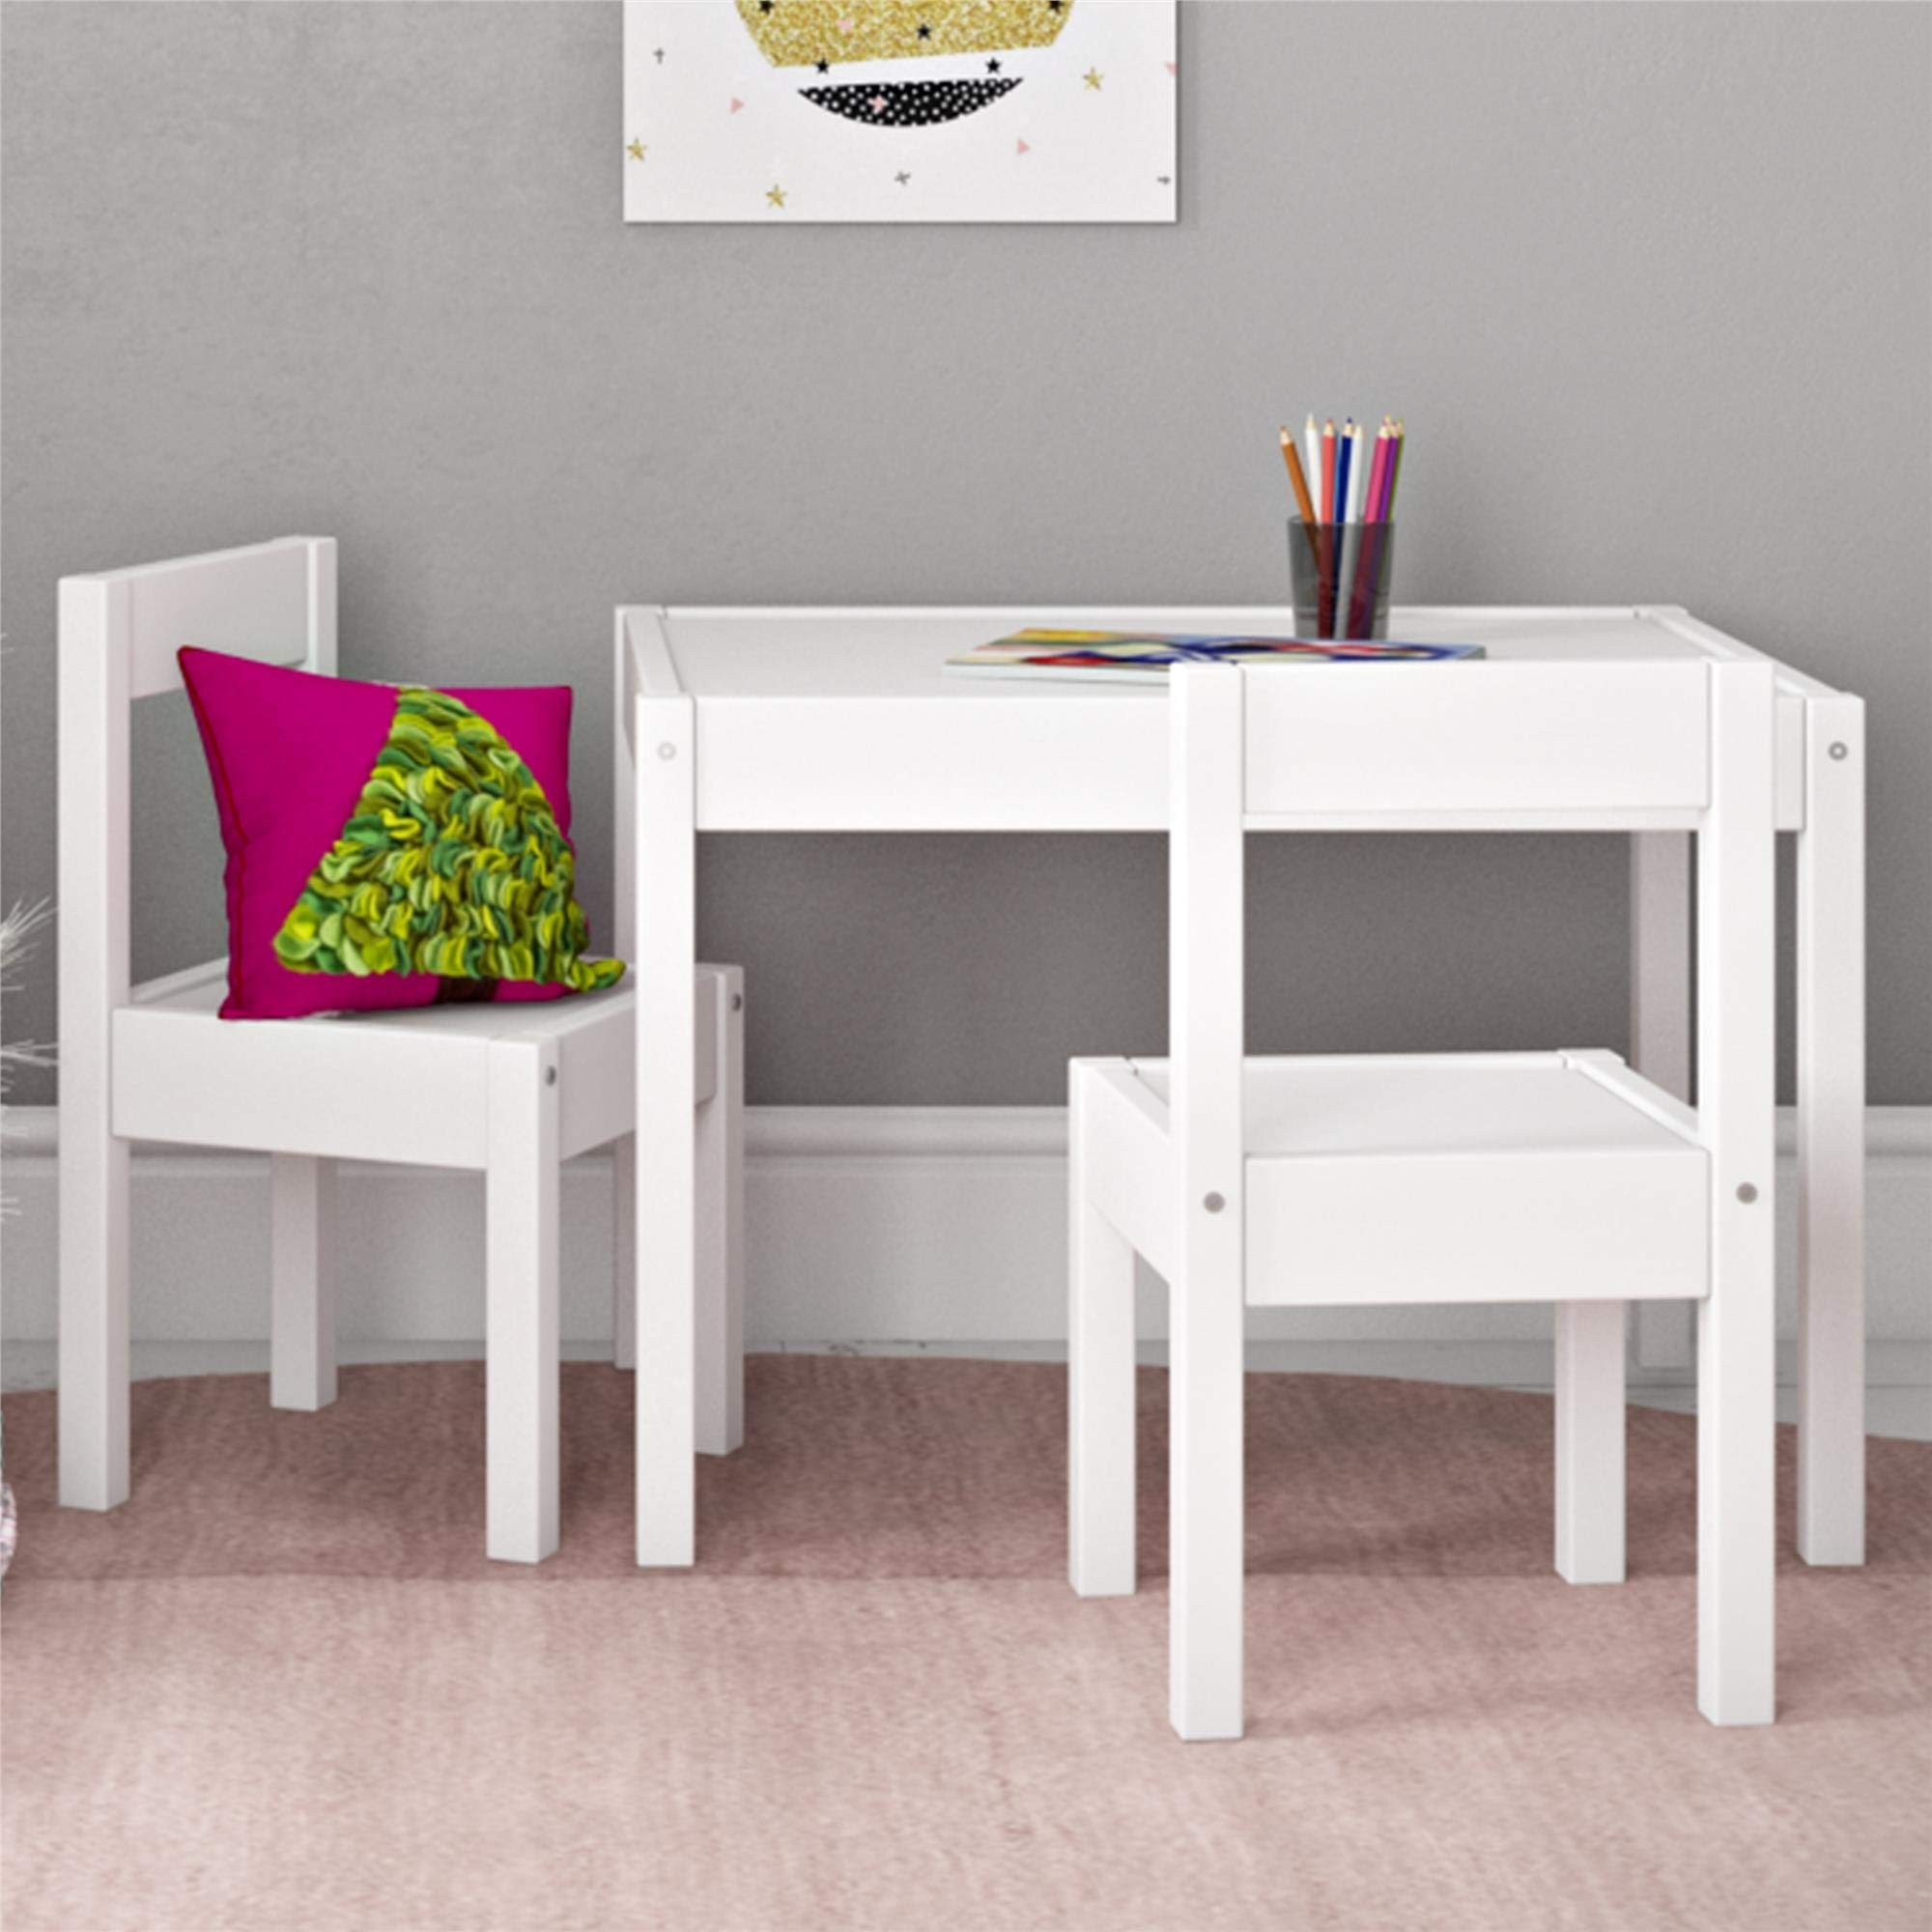 Baby Relax Hunter 3 Piece Kiddy Table and Chair Set, White by Baby Relax